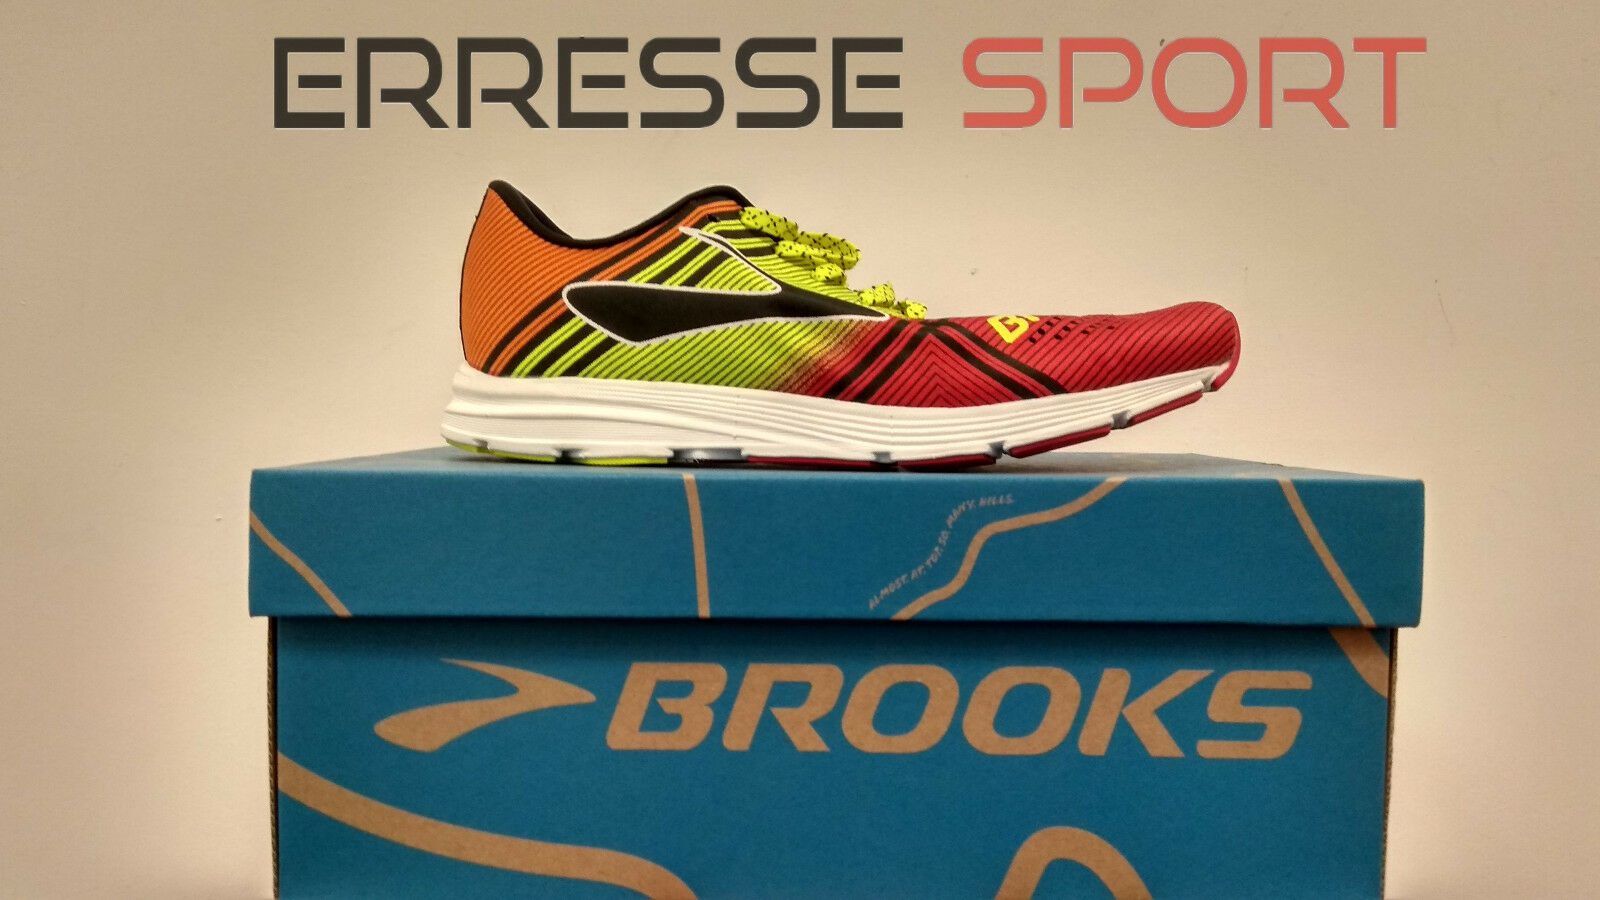 Brooks Hyperion Hyperion Brooks scarpe running uomo superleggere cddba7